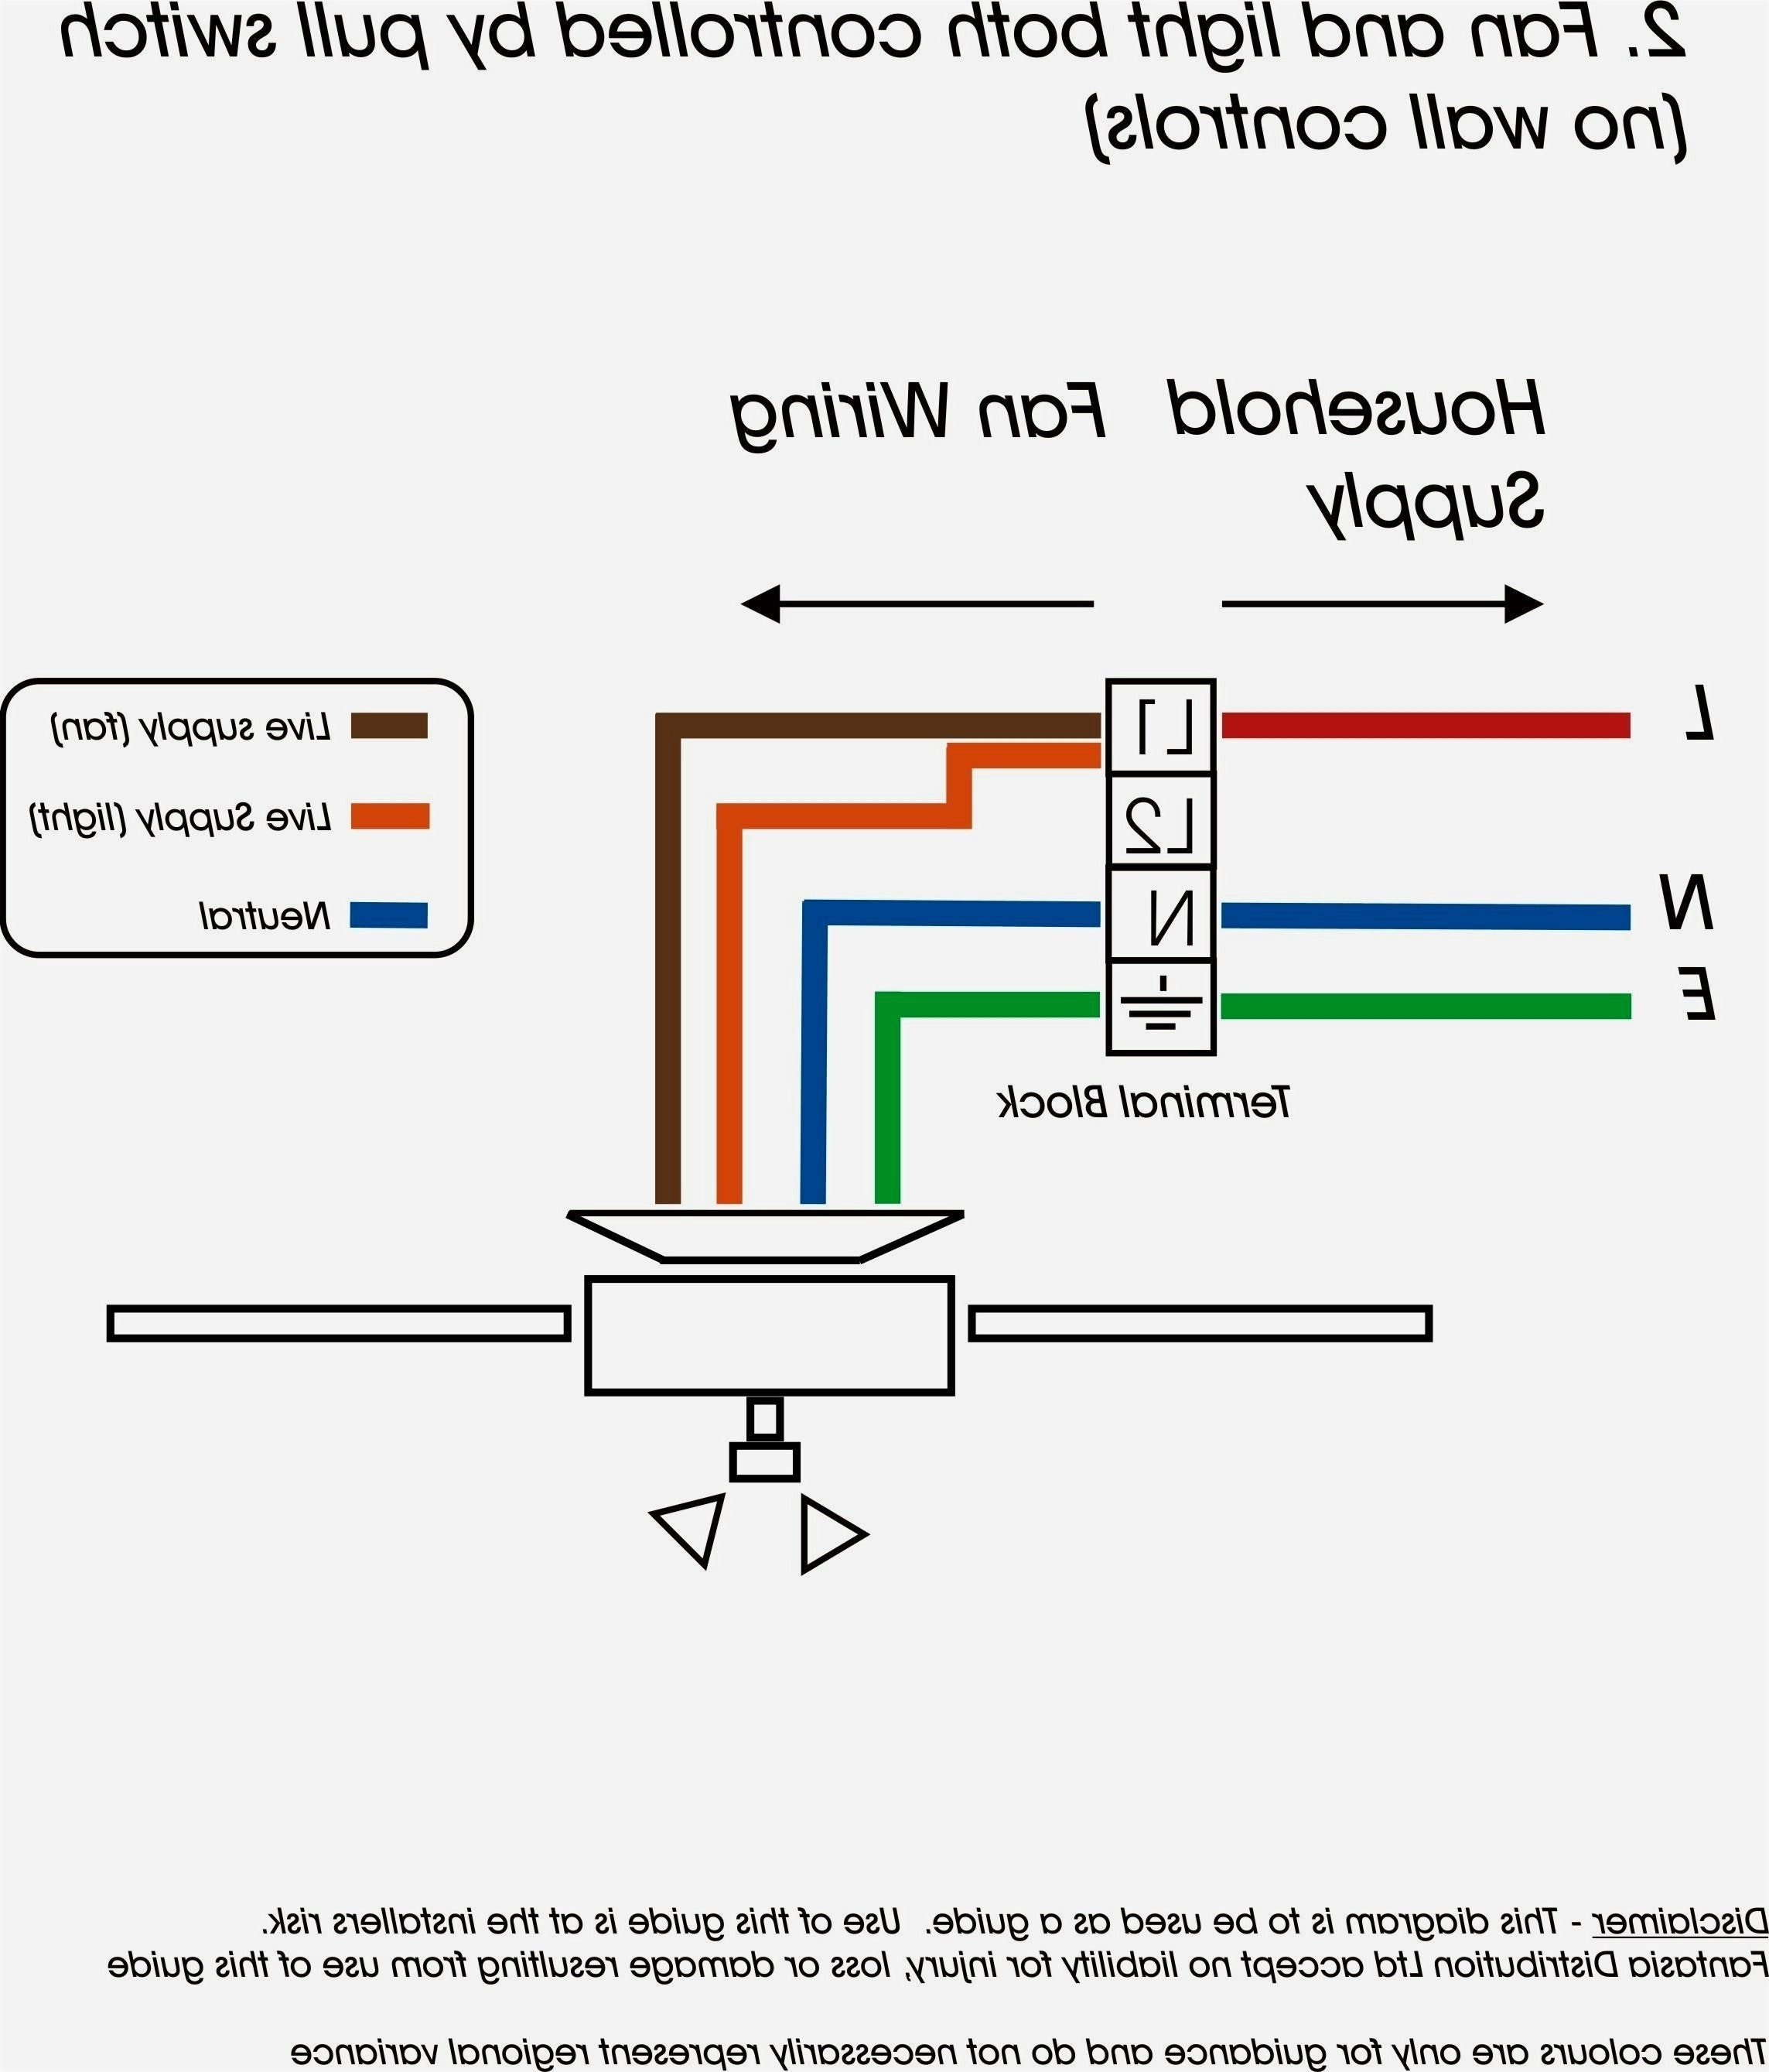 Nato Plug Wiring Diagram - Nato Plug Wiring Diagram Collection Wiring Diagram for Phone socket Fresh attractive Light socket Wiring Download Wiring Diagram 10a